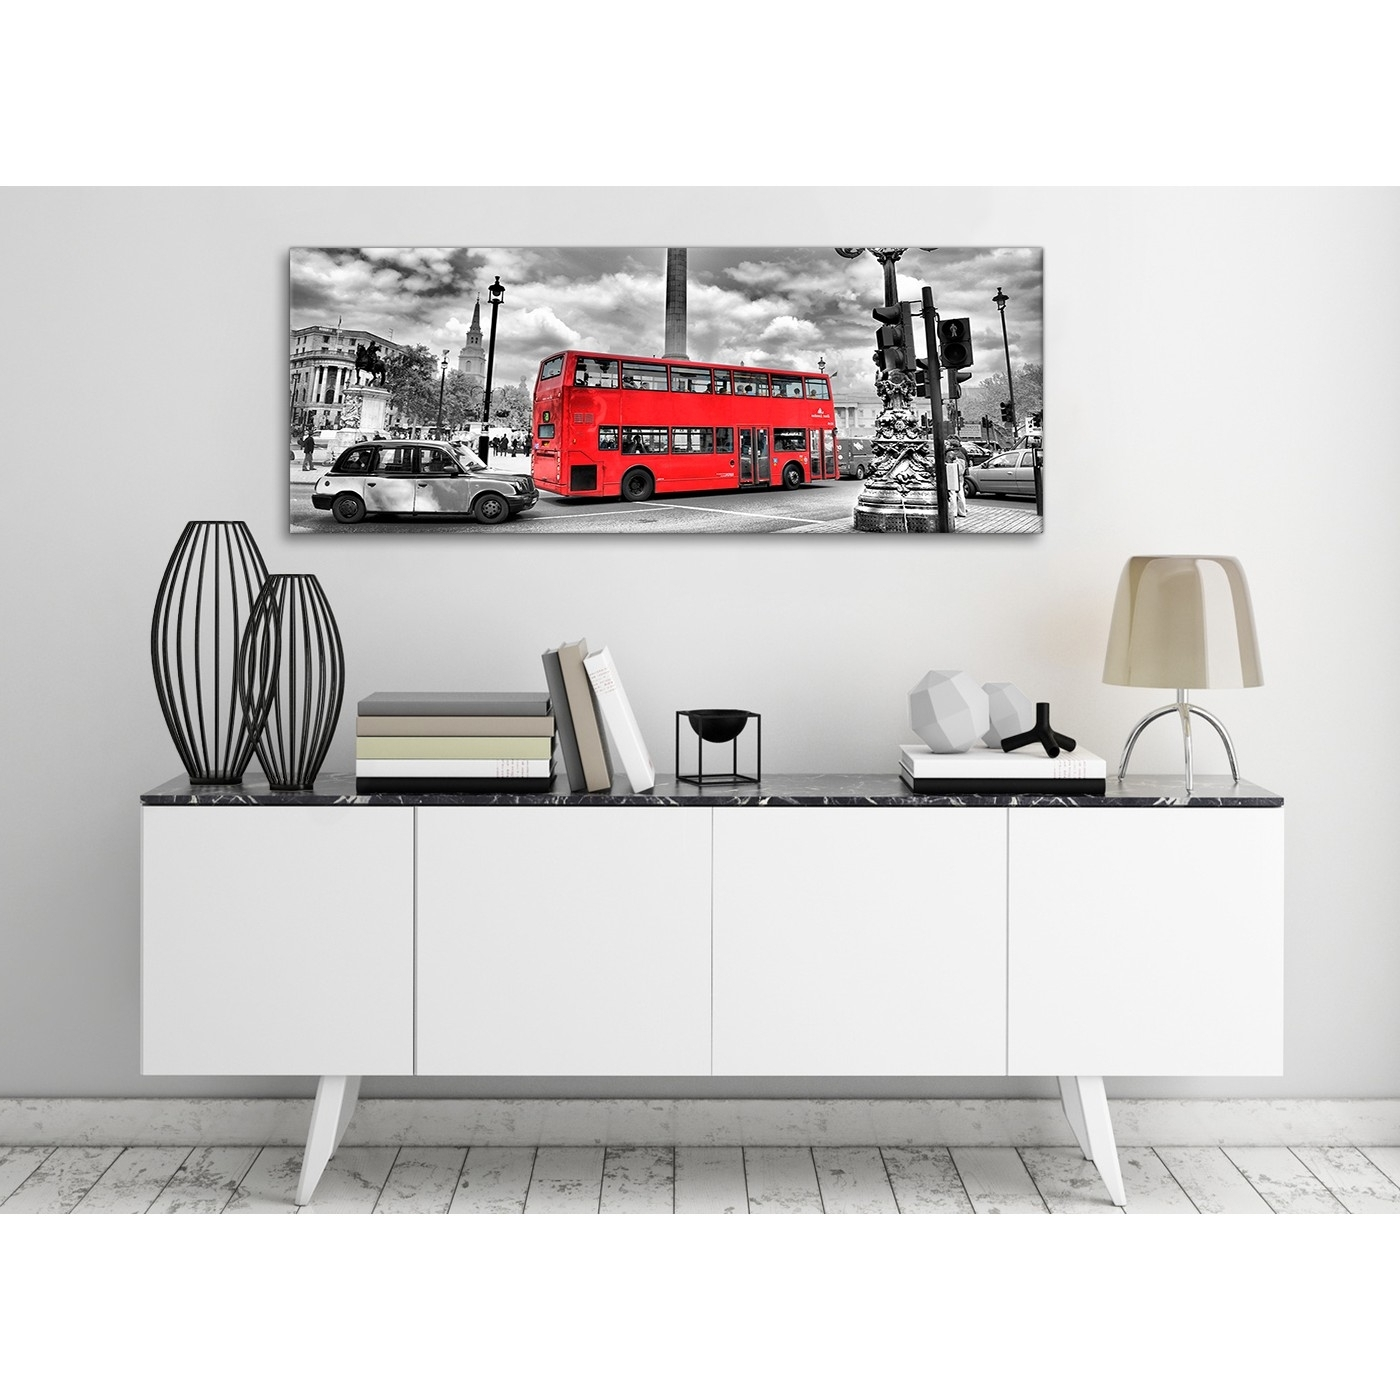 Newest London Scene Wall Art Regarding Red London Bus – Street Scene Cityscape Bedroom Canvas Pictures (View 12 of 15)